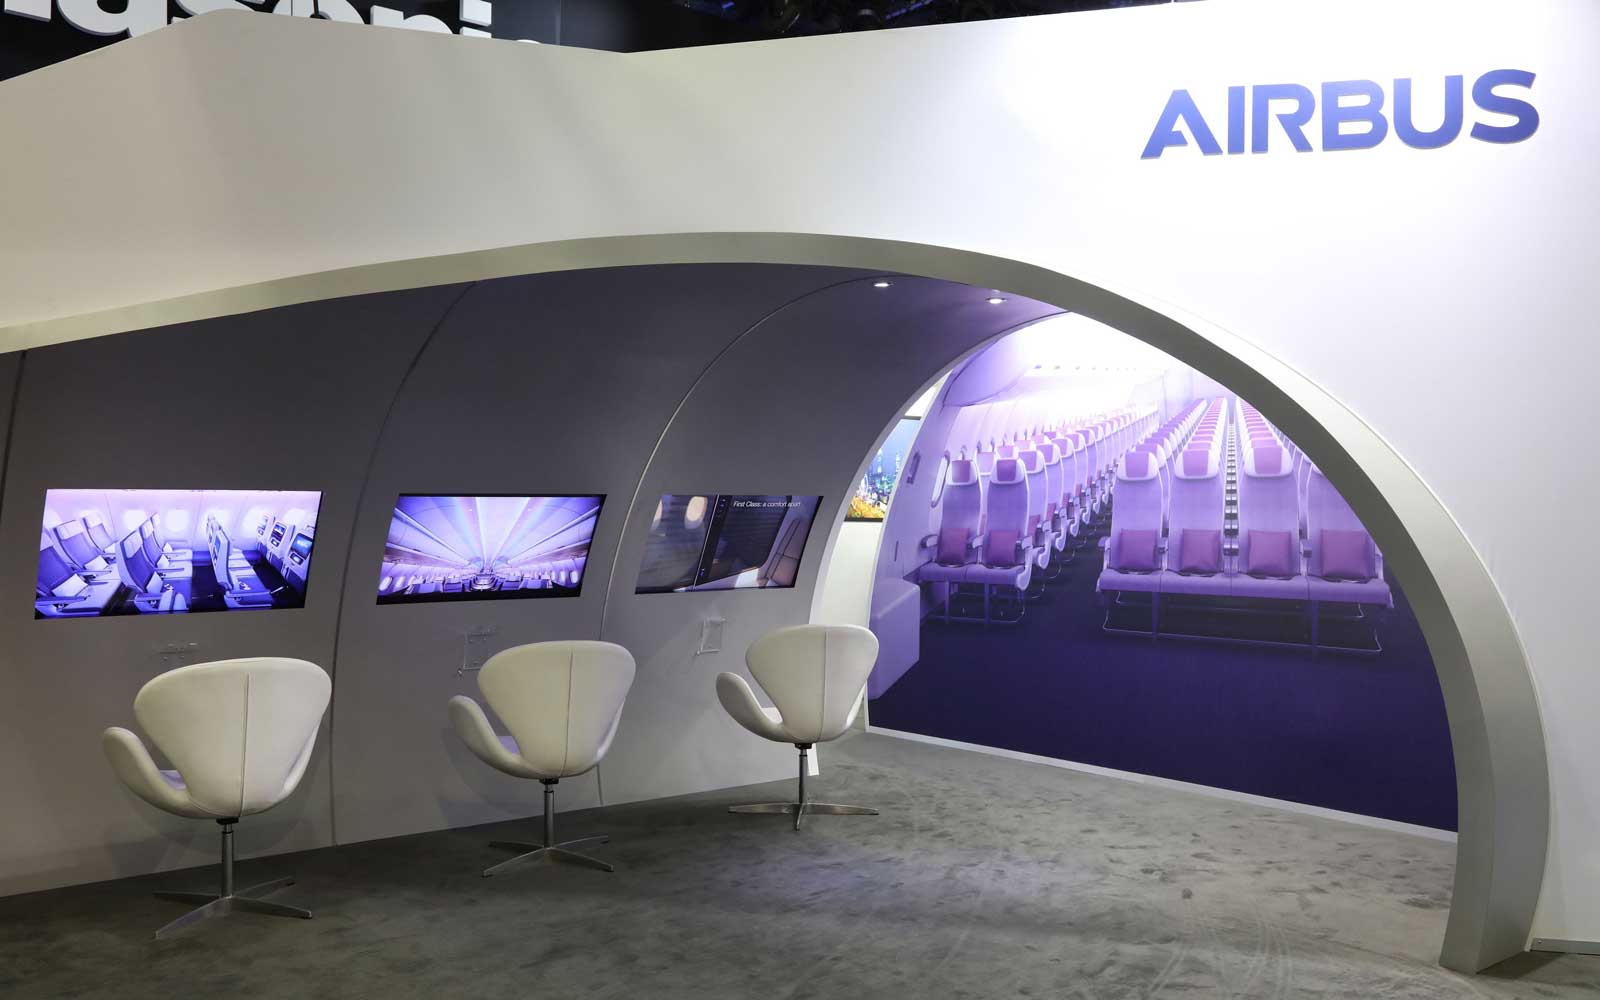 Airbus unveils Connected Cabin Technology at APEX Expo 2018